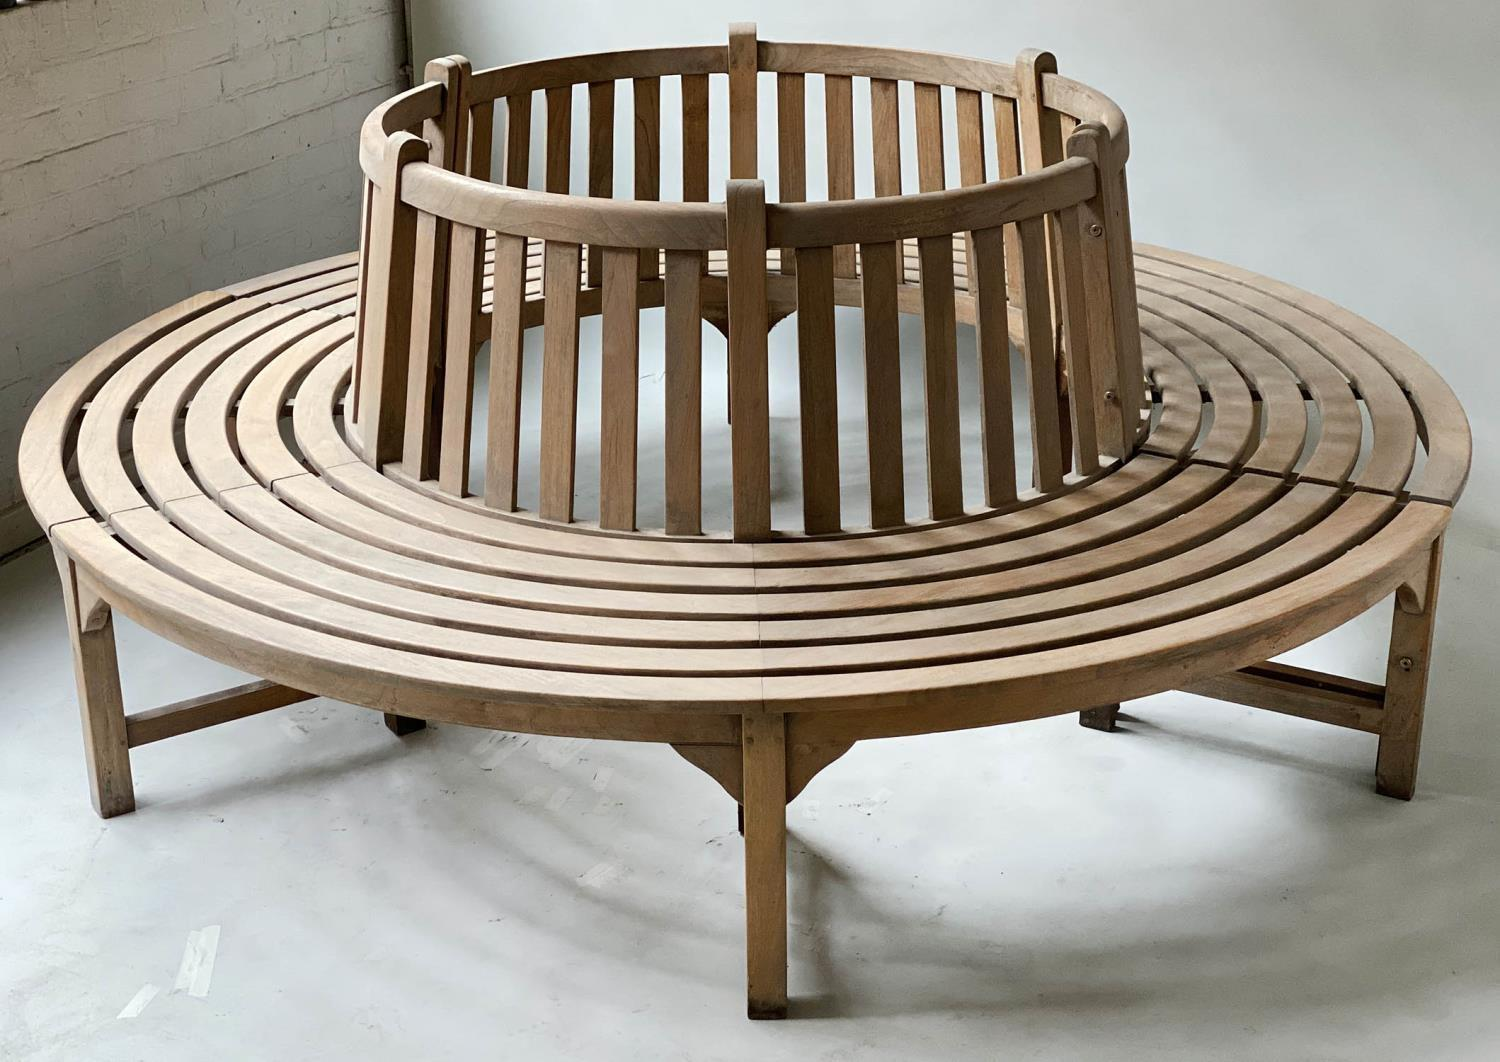 TREE BENCH, weathered teak and slatted in two sections of concentric slats and raised back rest,